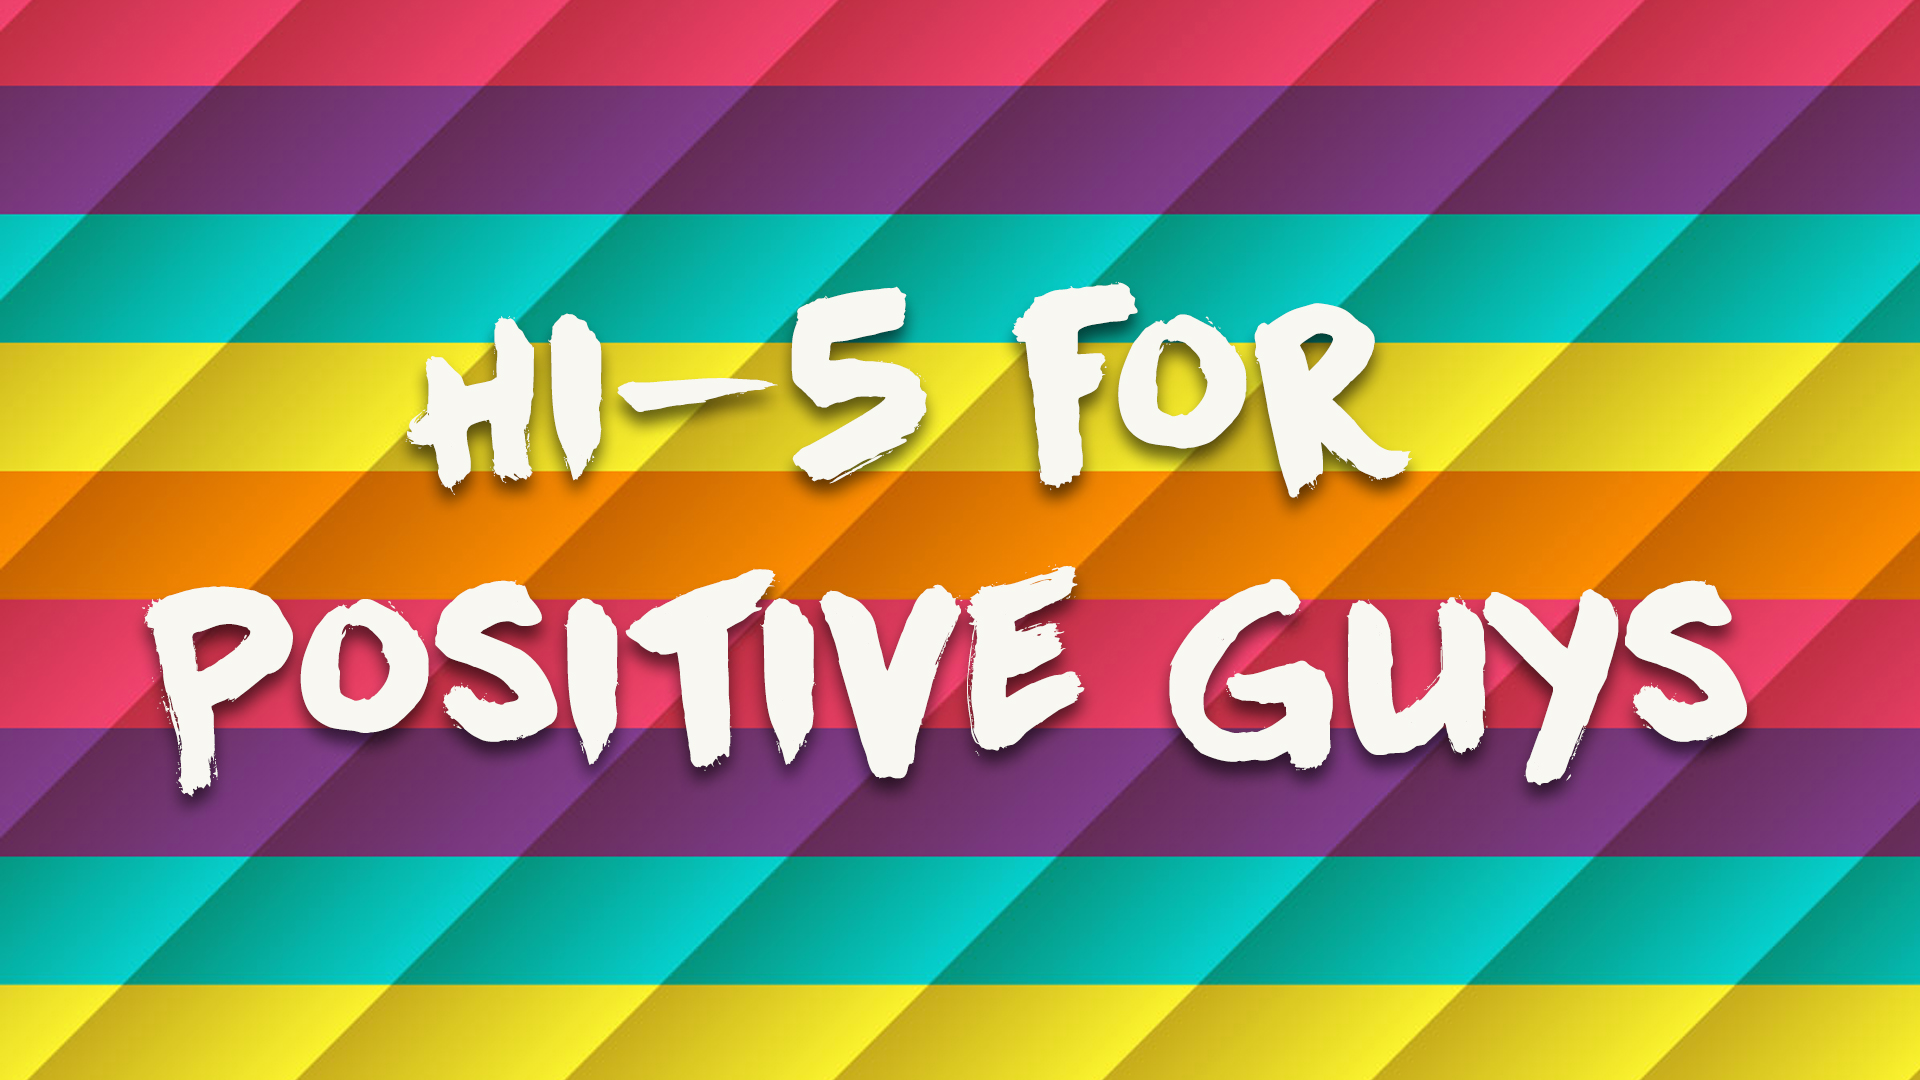 Hi-5 For Positive Guys